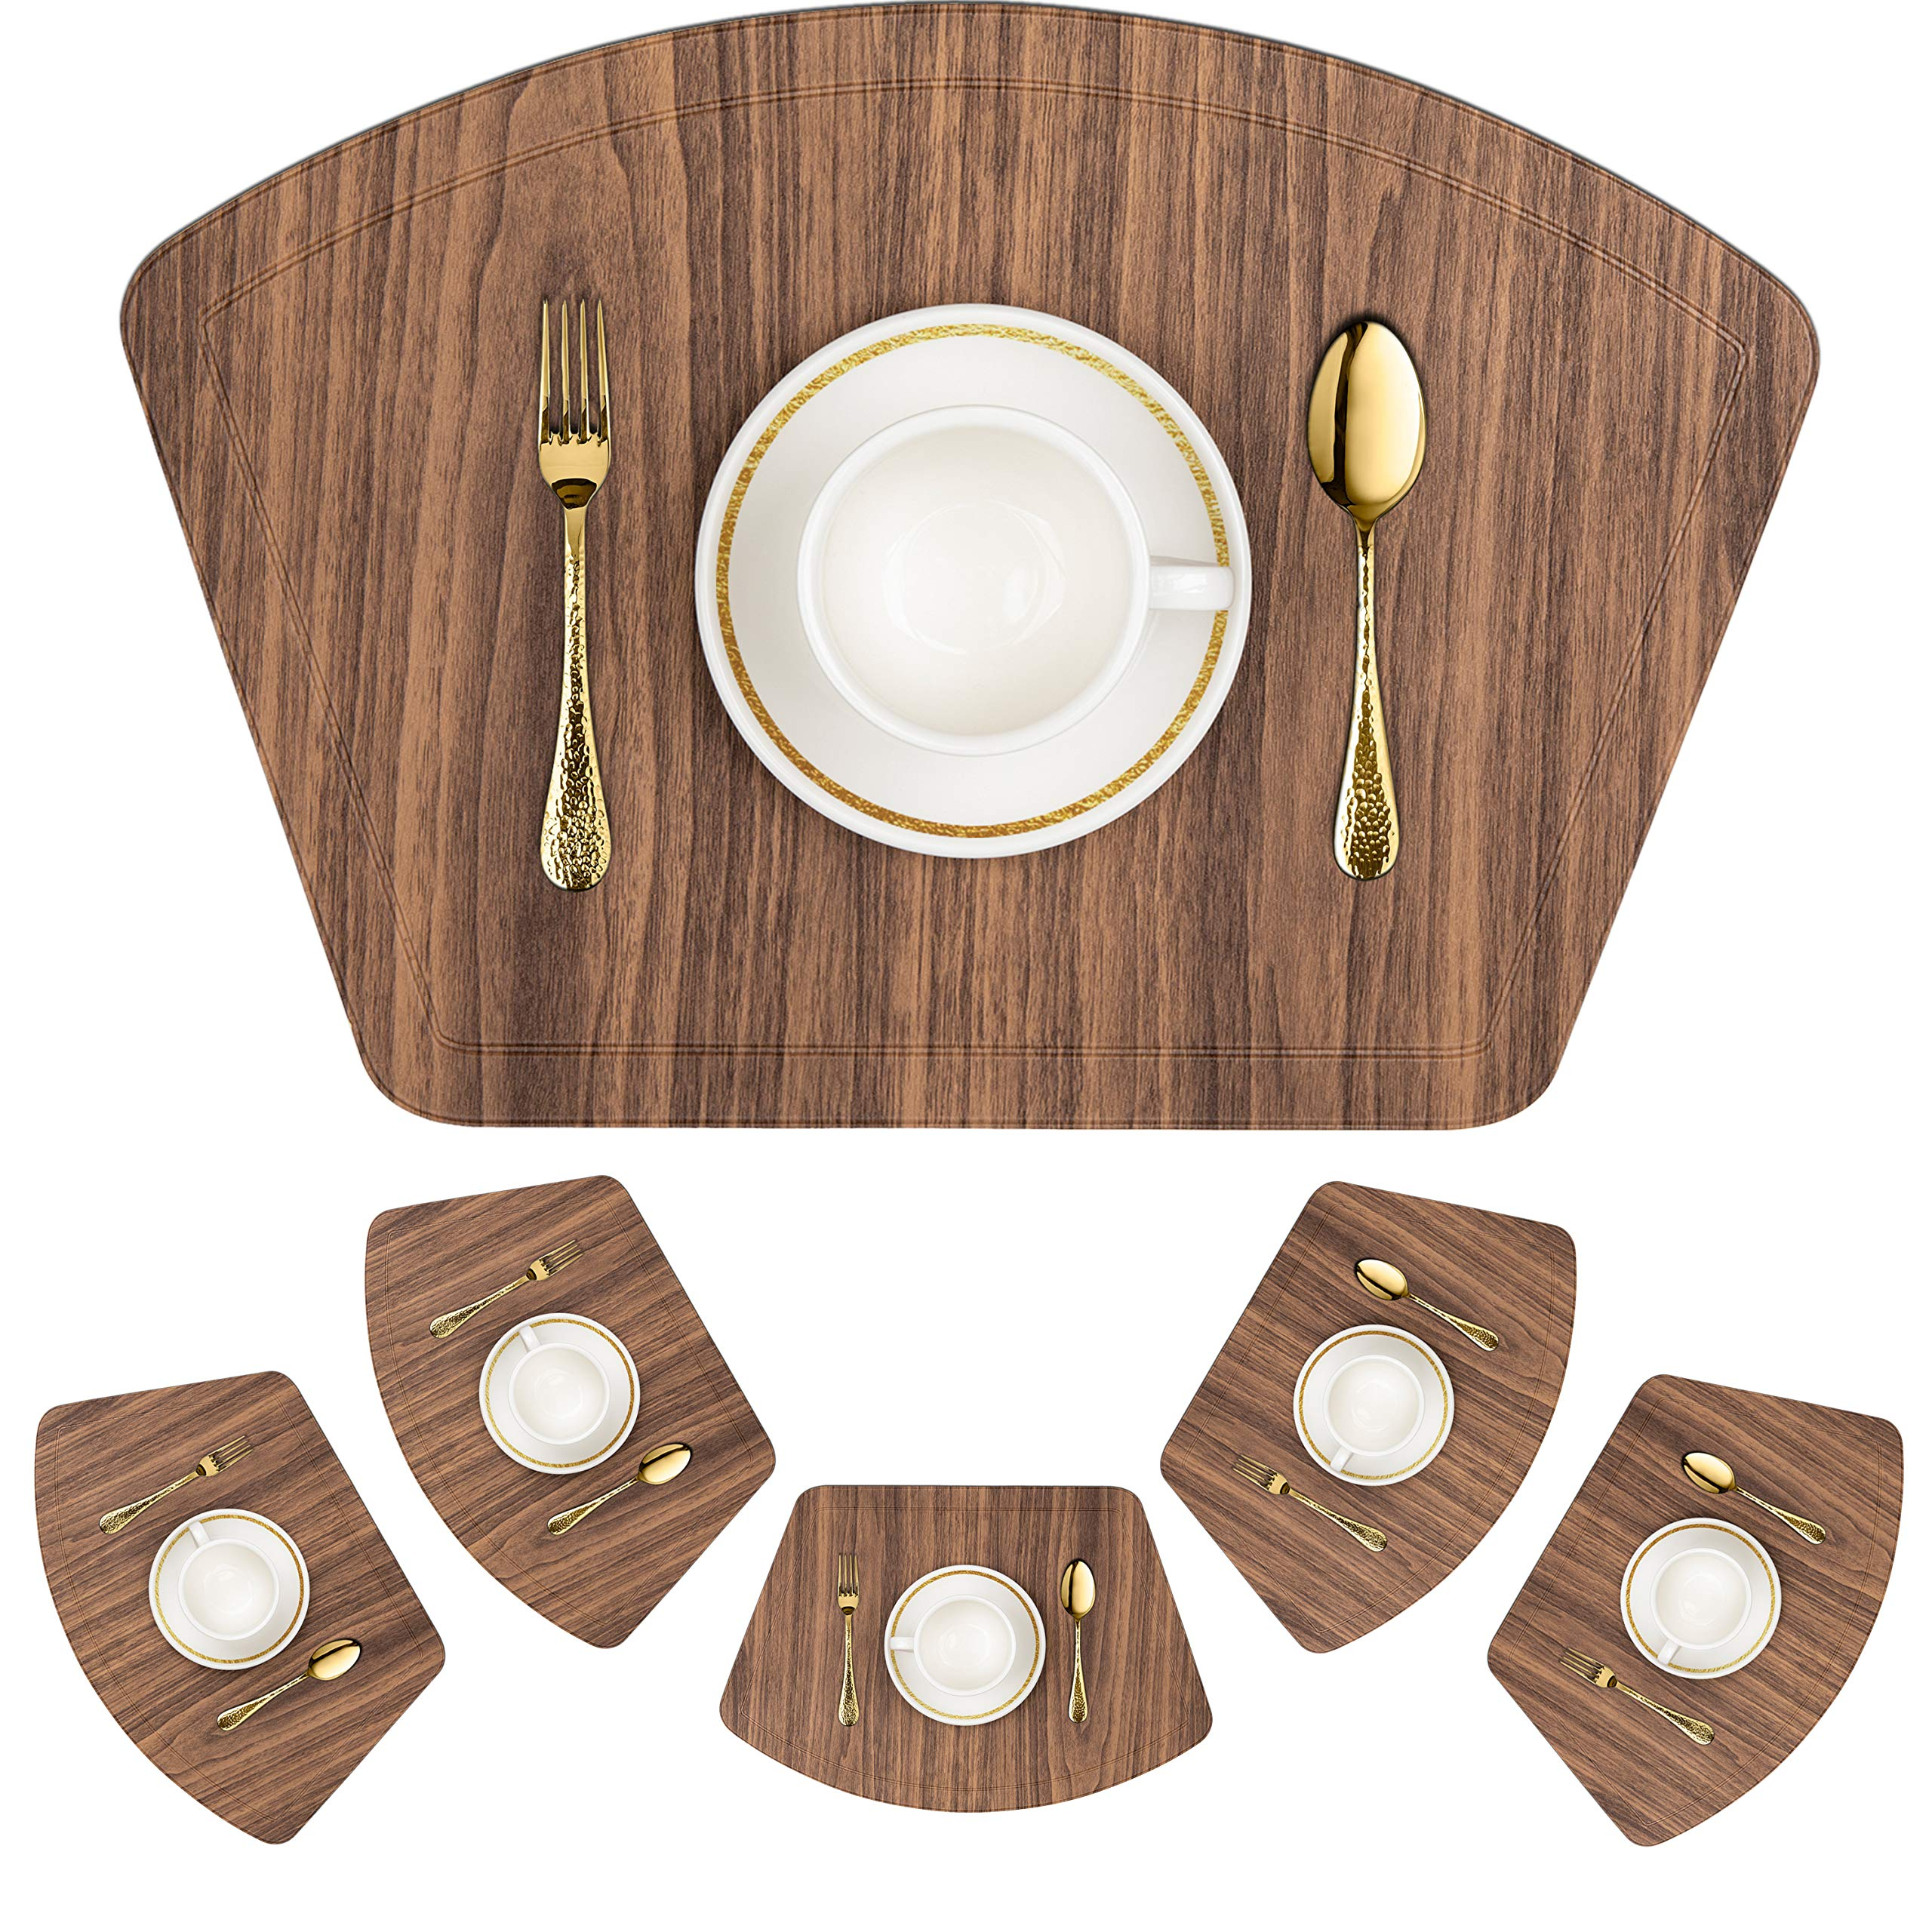 IMMOKAZ Round Placemat for Dining Heat Insulation Stain Resistant Non-Slip Waterproof Washable Wipe Clean PU Fan Shape Wedge Kitchen Table Mat Set (6, Pu_Wood Brown)